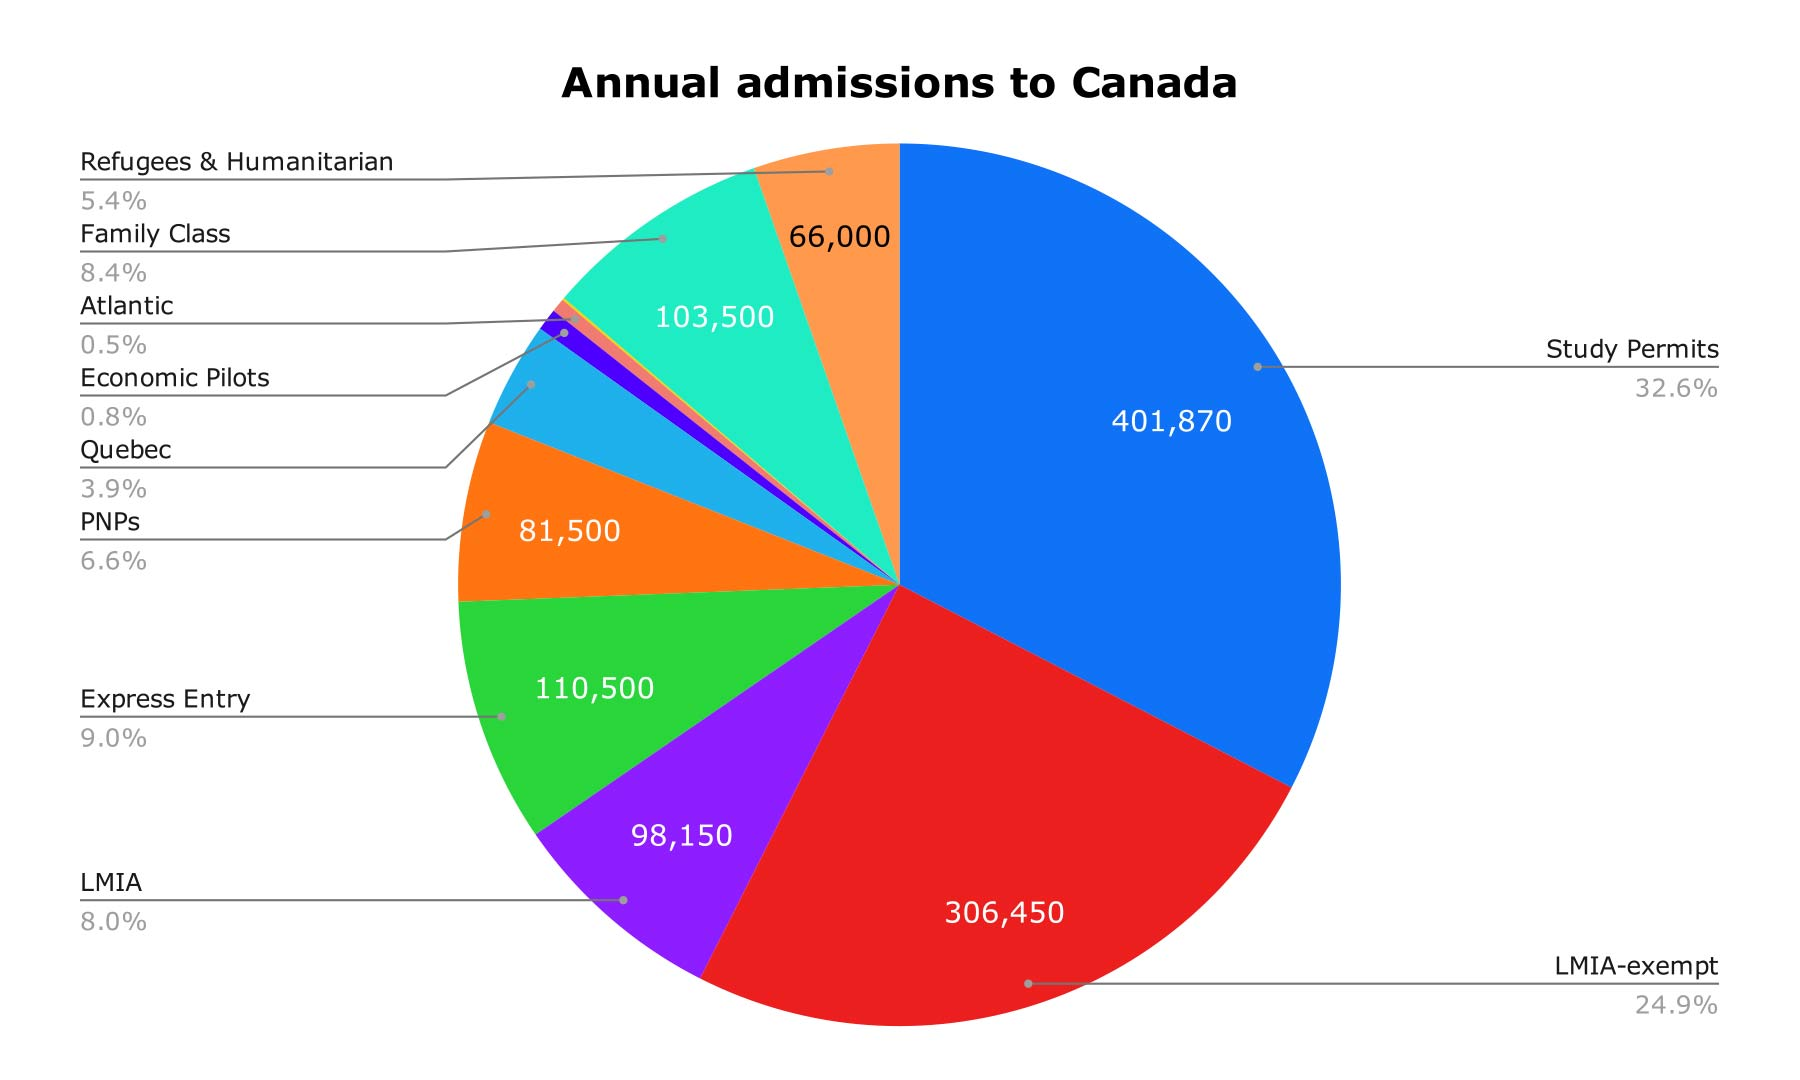 Pie chart describing Canada's annual immigration admissions